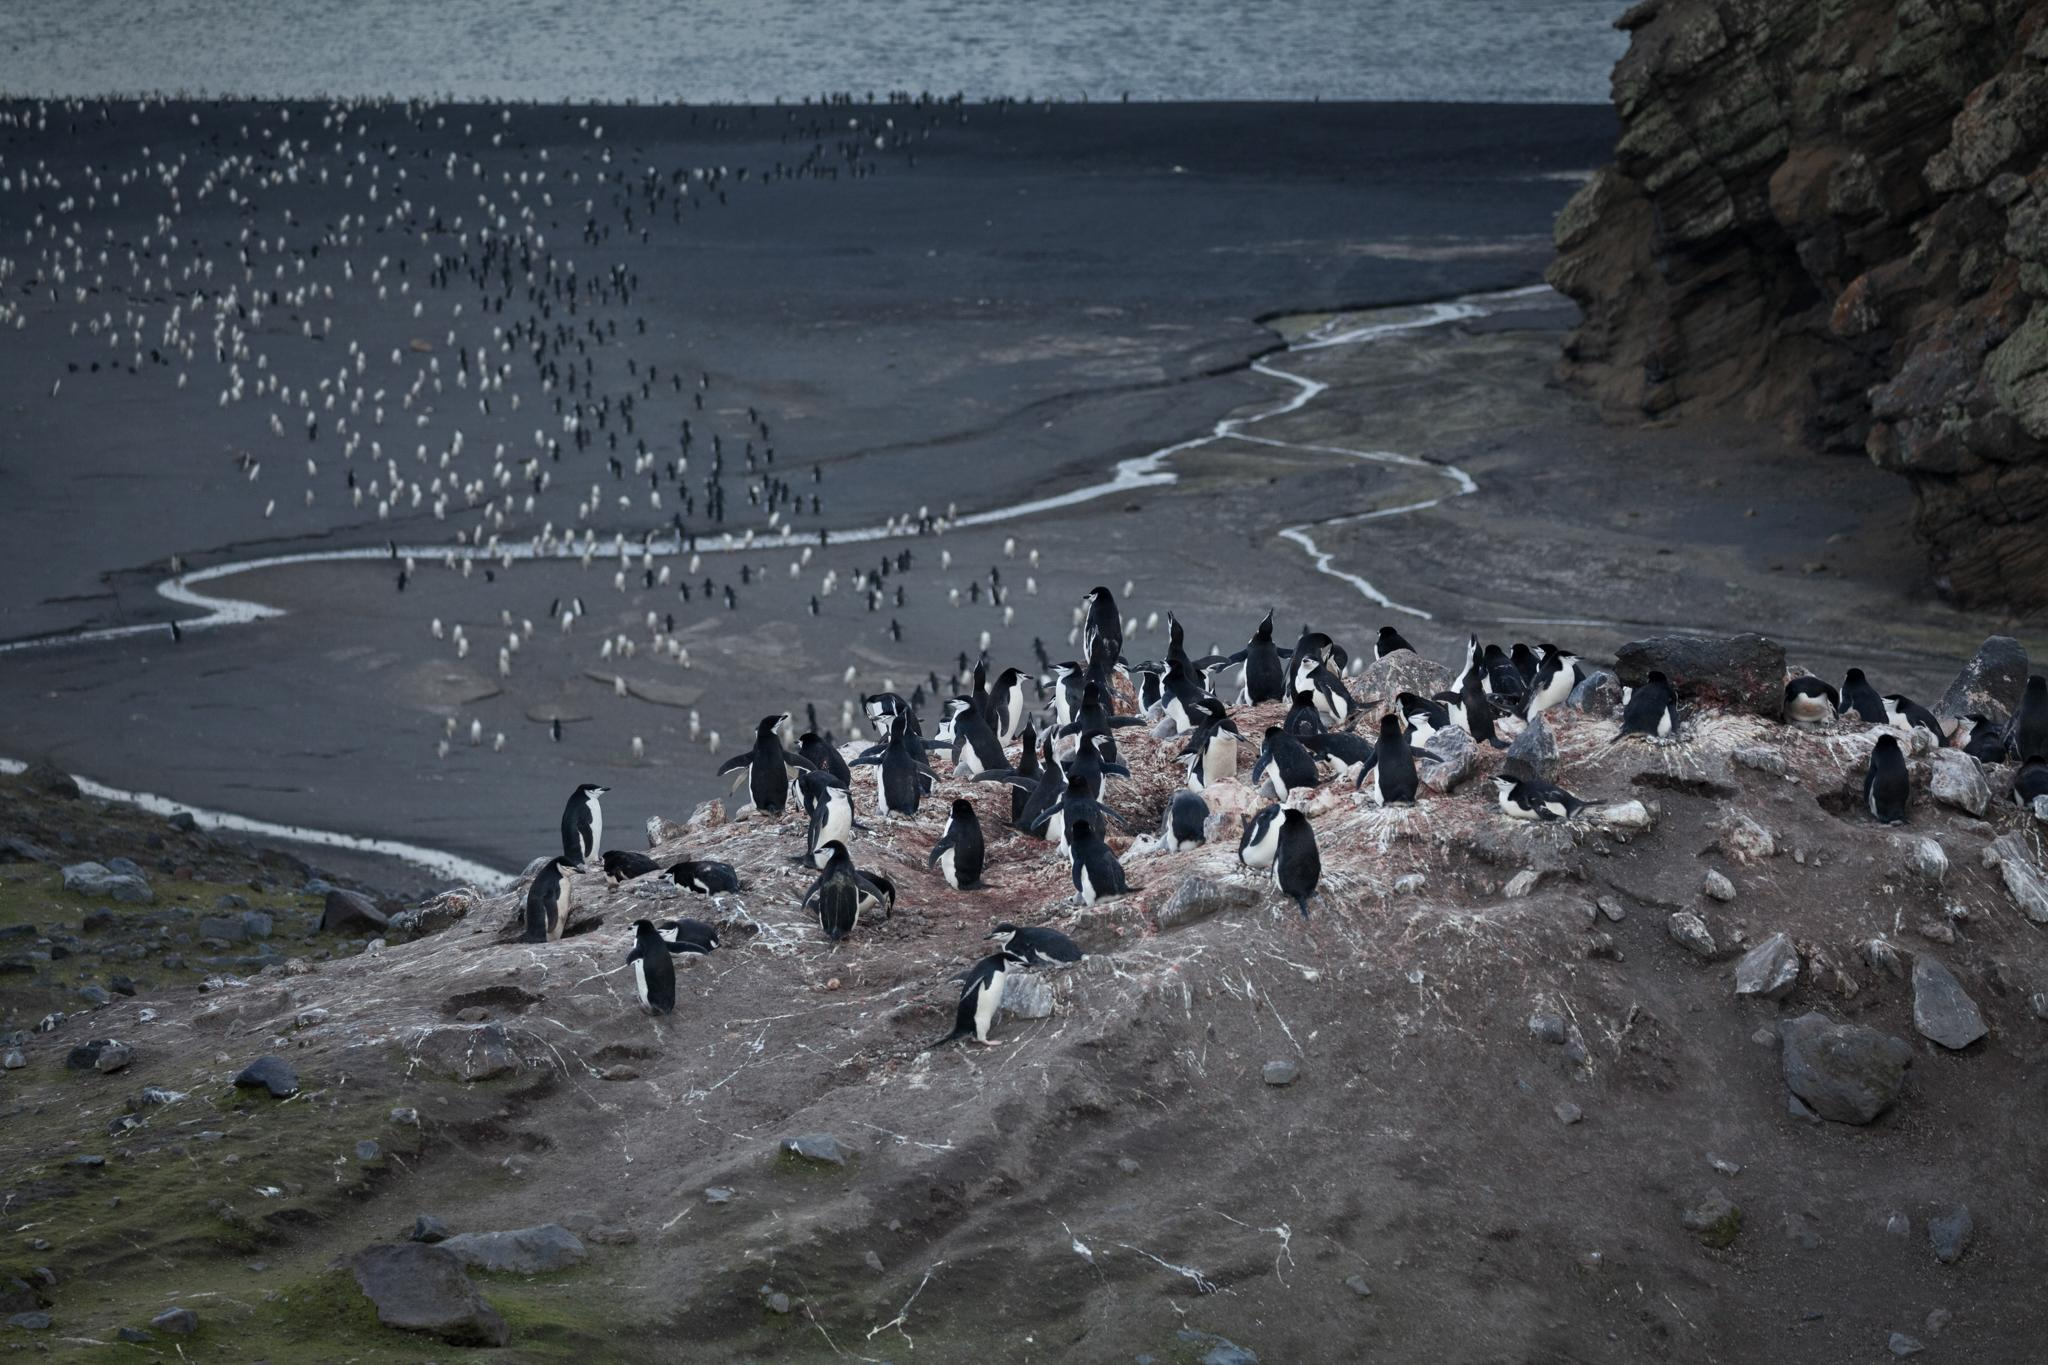 Chinstrap penguins at Baily Head, on the southeast corner of Deception Island - a natural amphitheater with Antarctica's largest colony of chinstrap penguins, estimated at 100,000 breeding pairs.